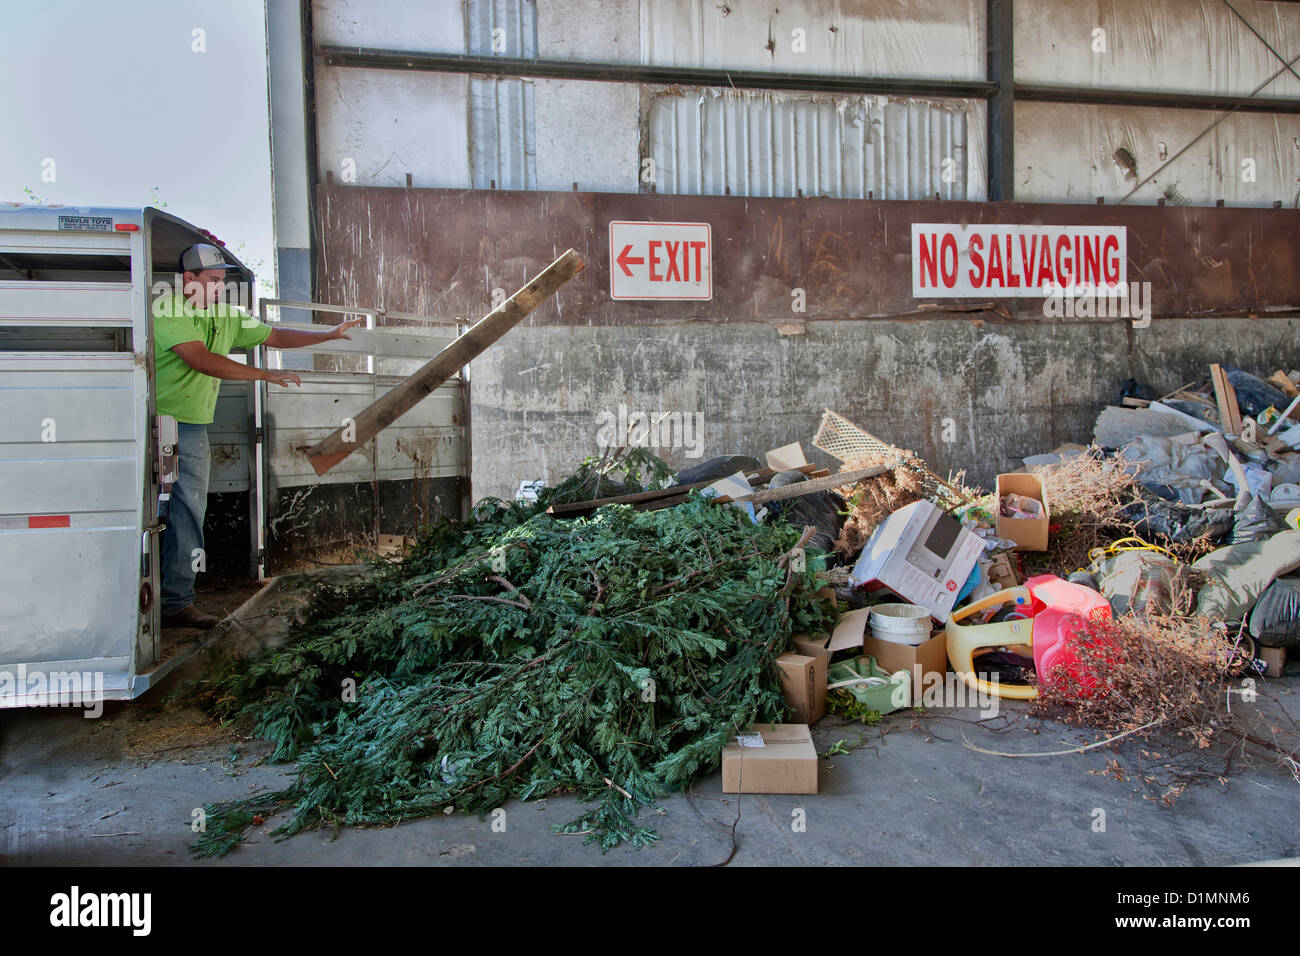 Young adult male dumping trash  & plastics from trailer,  collection site. - Stock Image